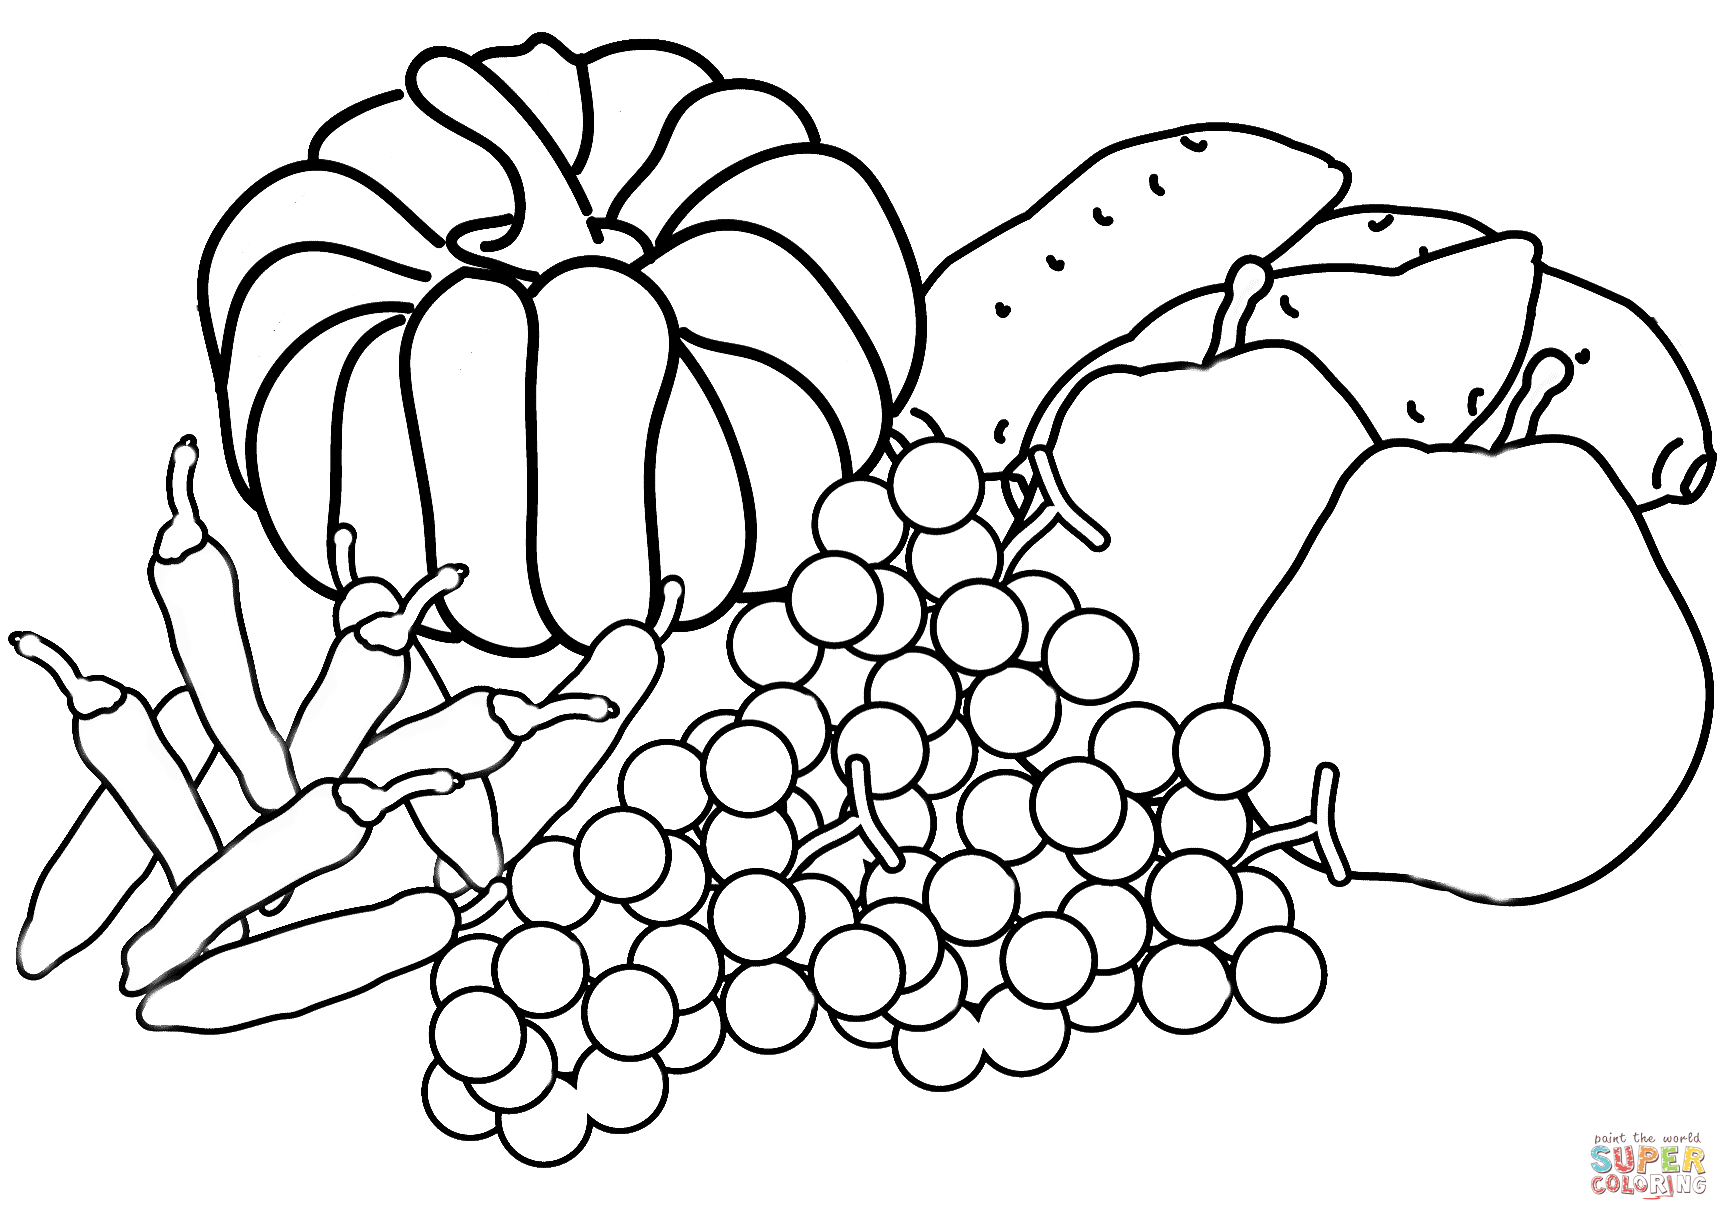 Autumn Harvest Coloring Page